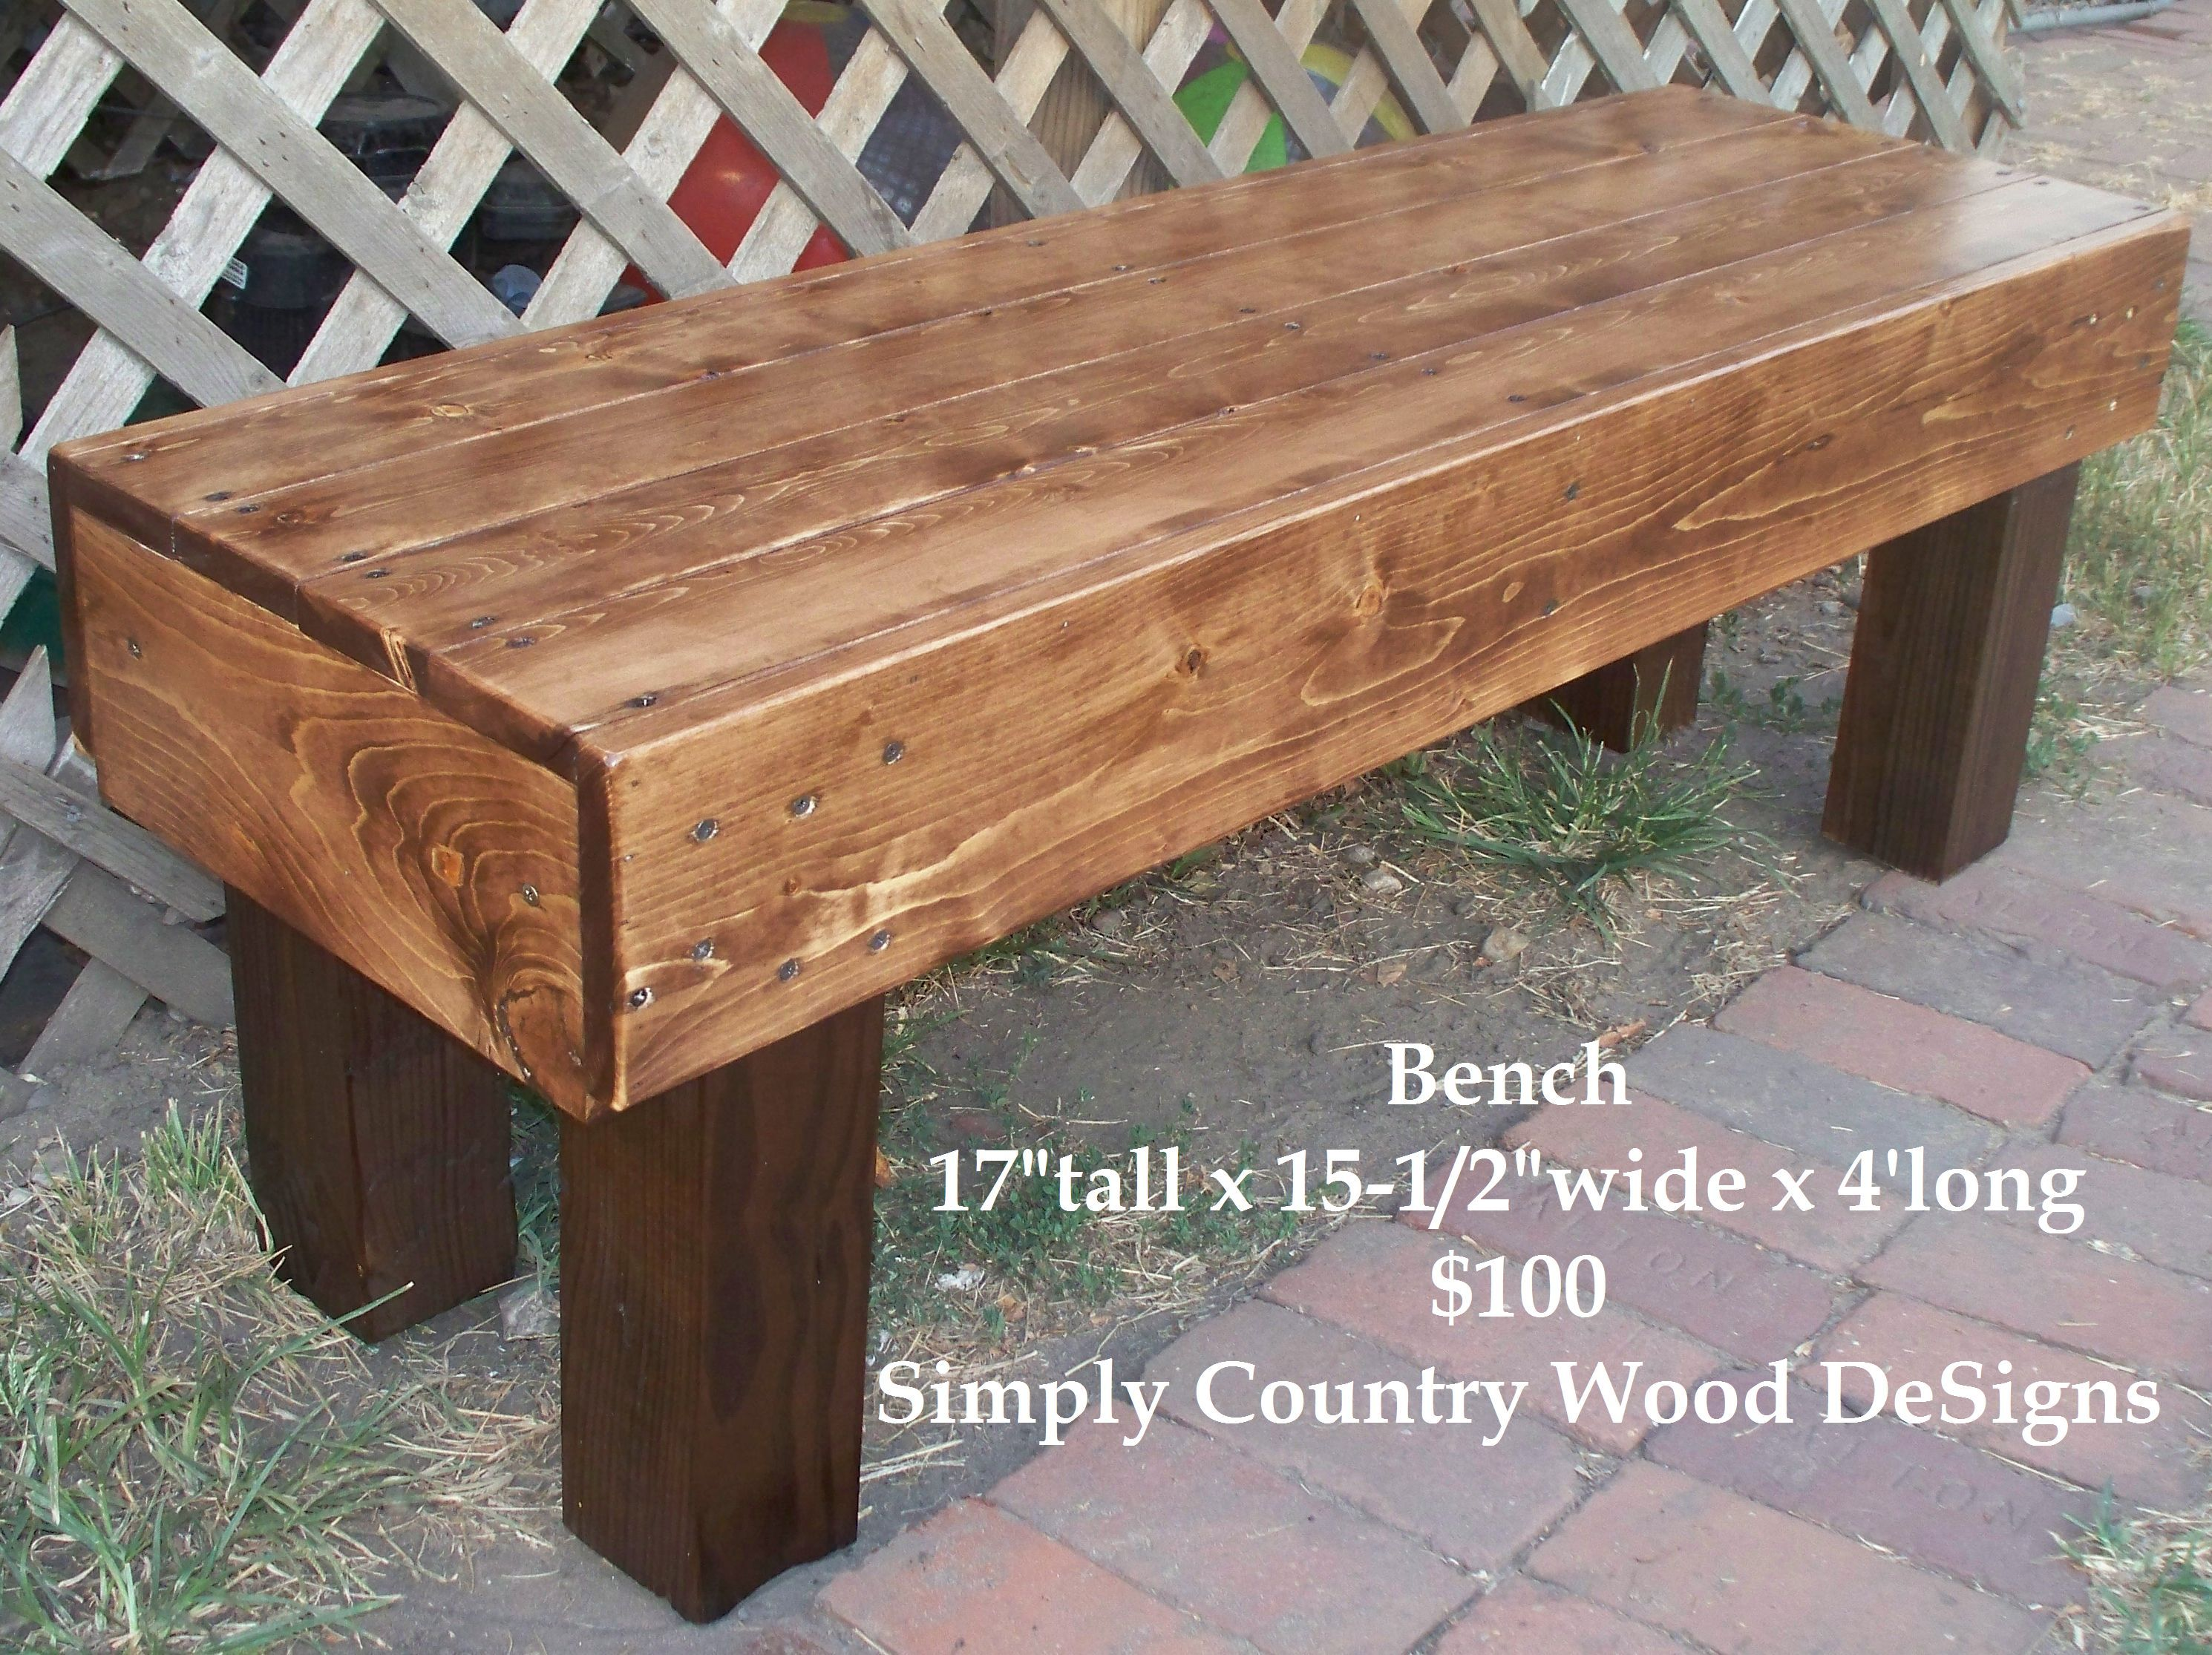 Country Wooden Benches Part - 50: Bench By Simply Country Wood DeSigns